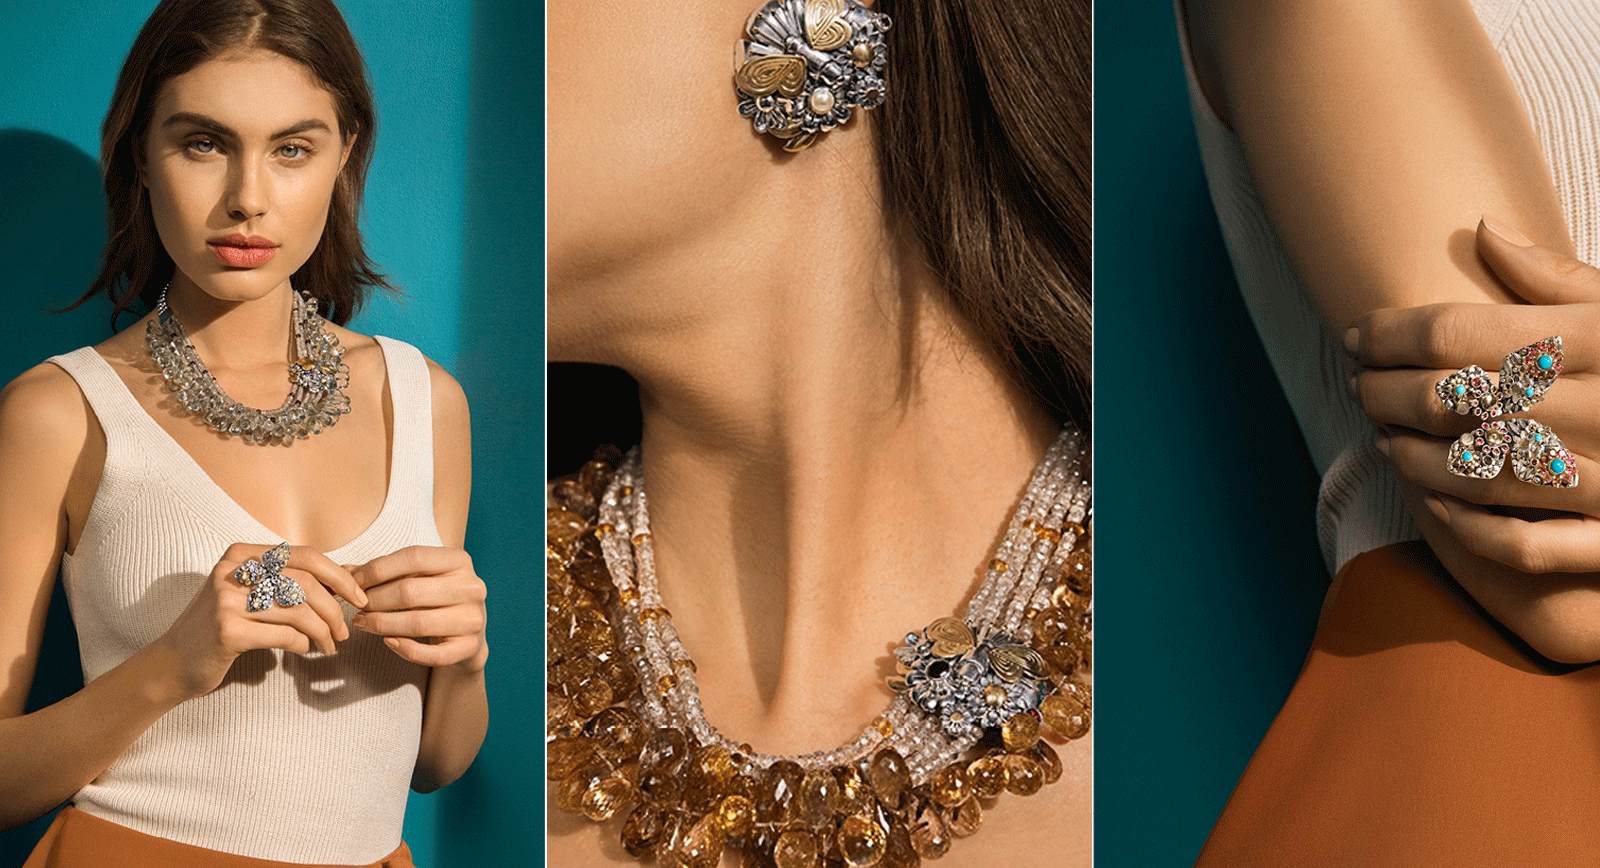 Azza Fahmy Presents Nature In All Its Glory In New Collection, The Wonders Of Nature